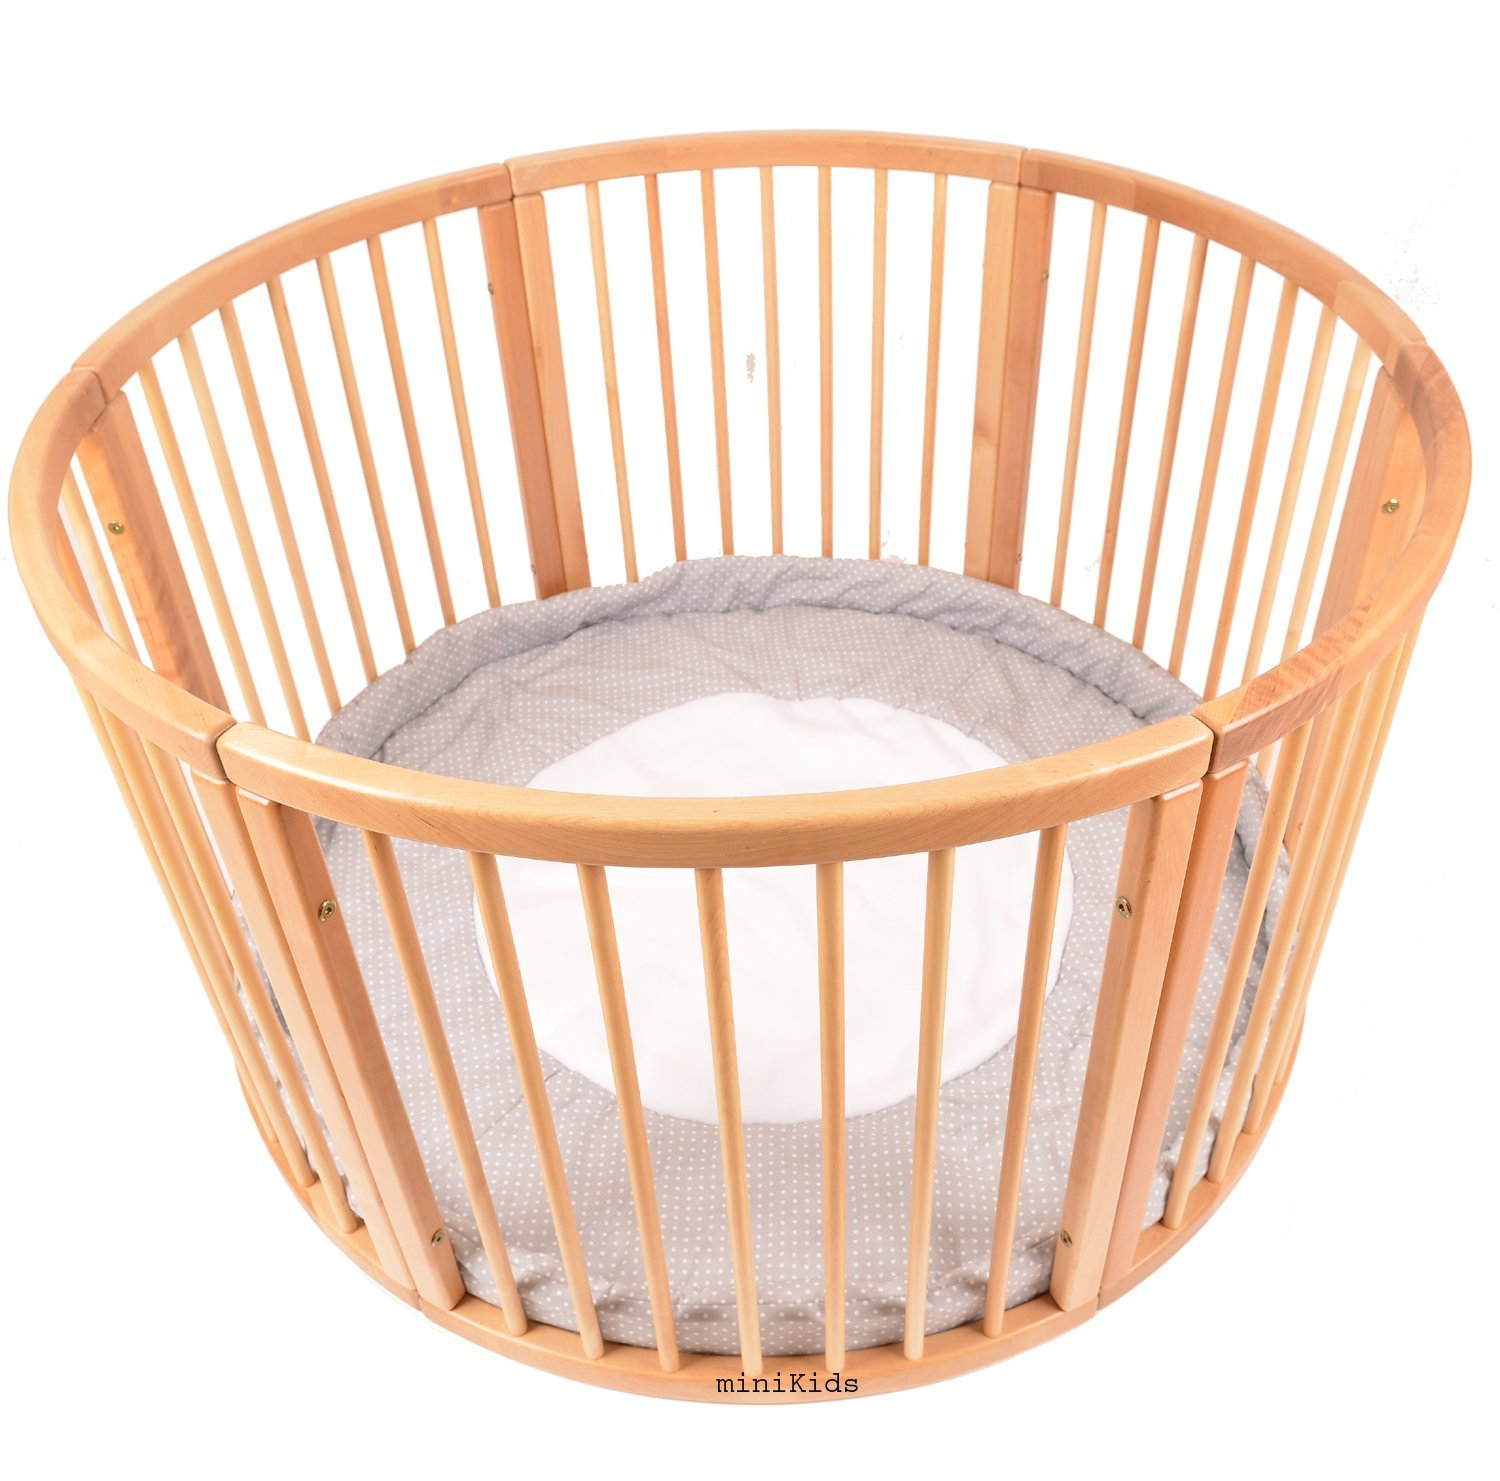 Solid Wood Round Playpen Play Pen with Soft Layer Diameter 120 cm Laufgitter from ALANEL  ALANEL